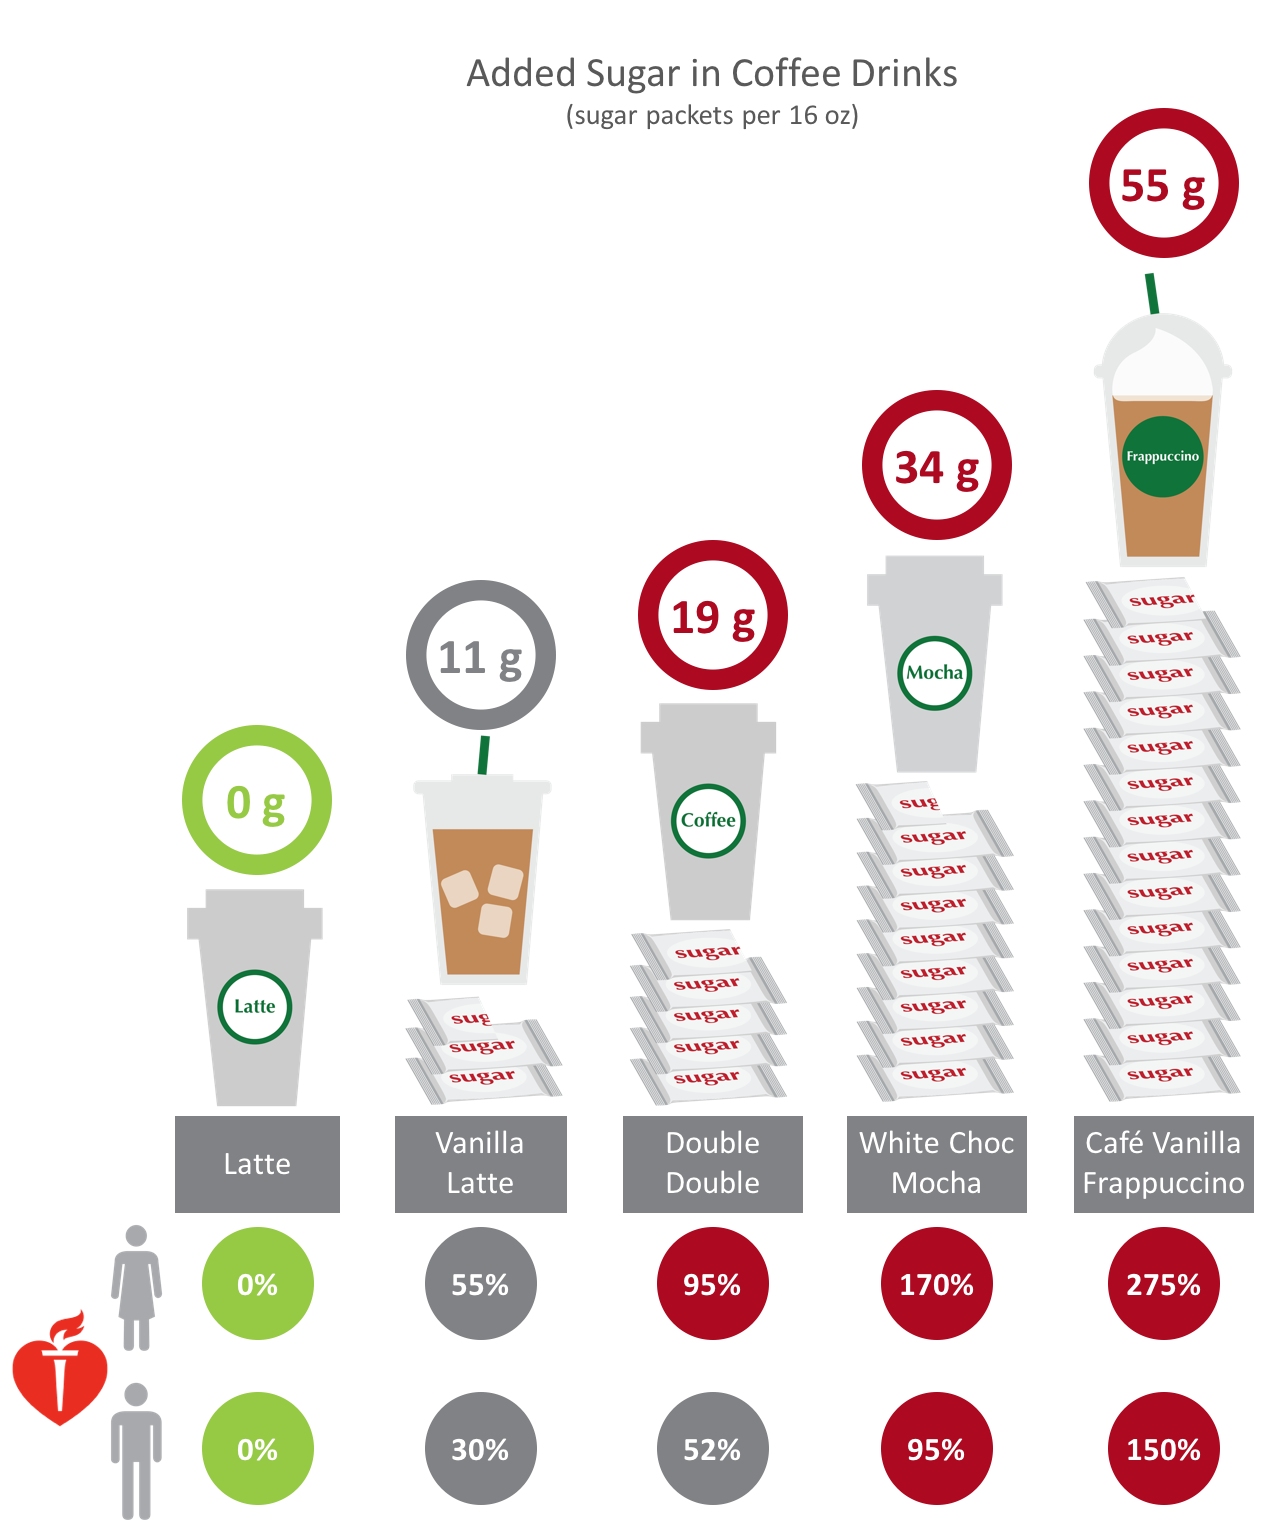 Number of sugar packets of added sugar for various coffee drinks, www.feedthemwisely.com